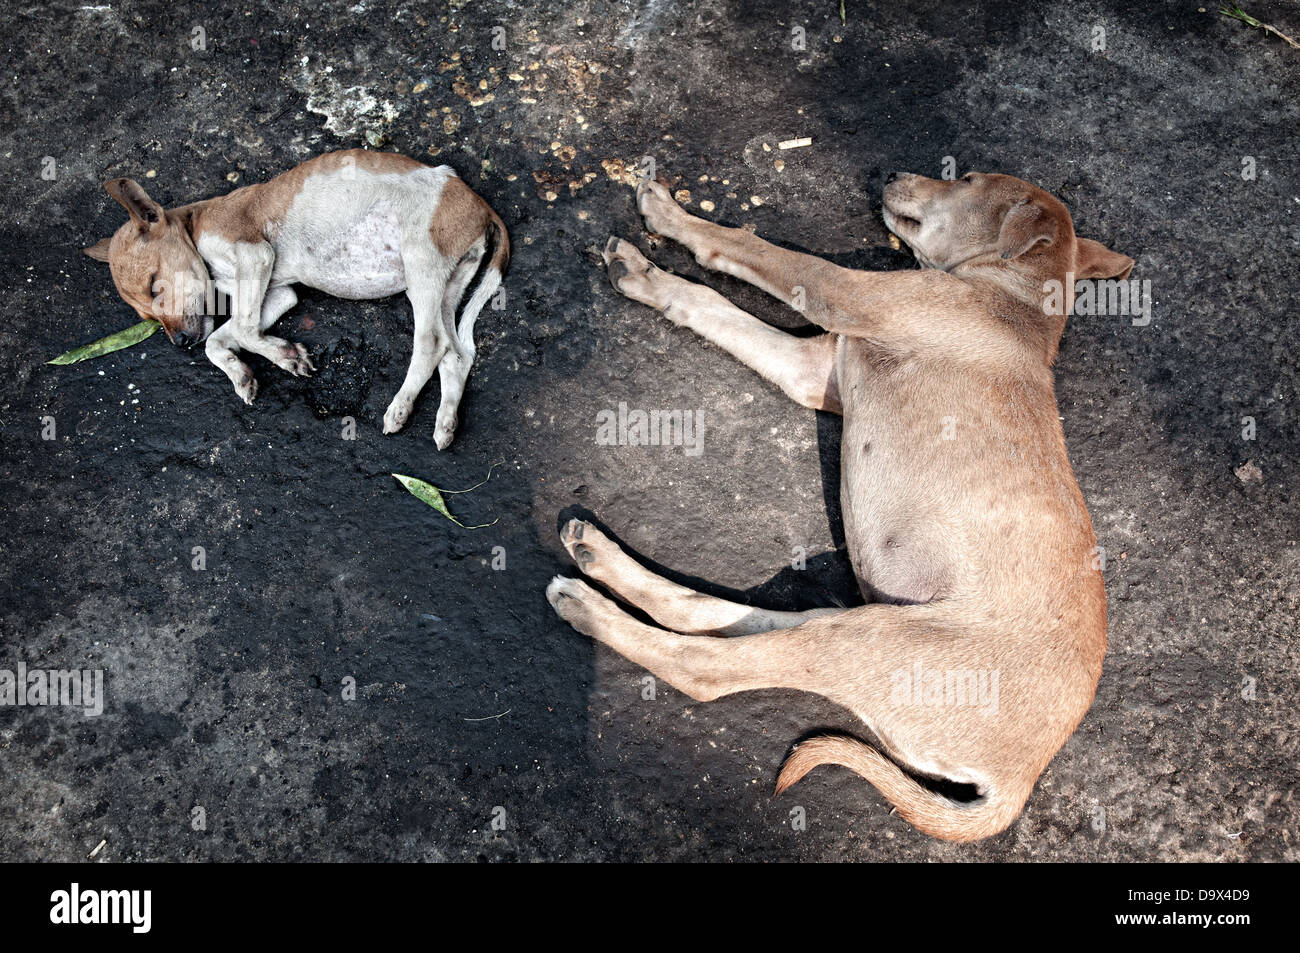 Dogs sleeping on the ground around Kalighat temple. Calcutta, West Bengal, India - Stock Image